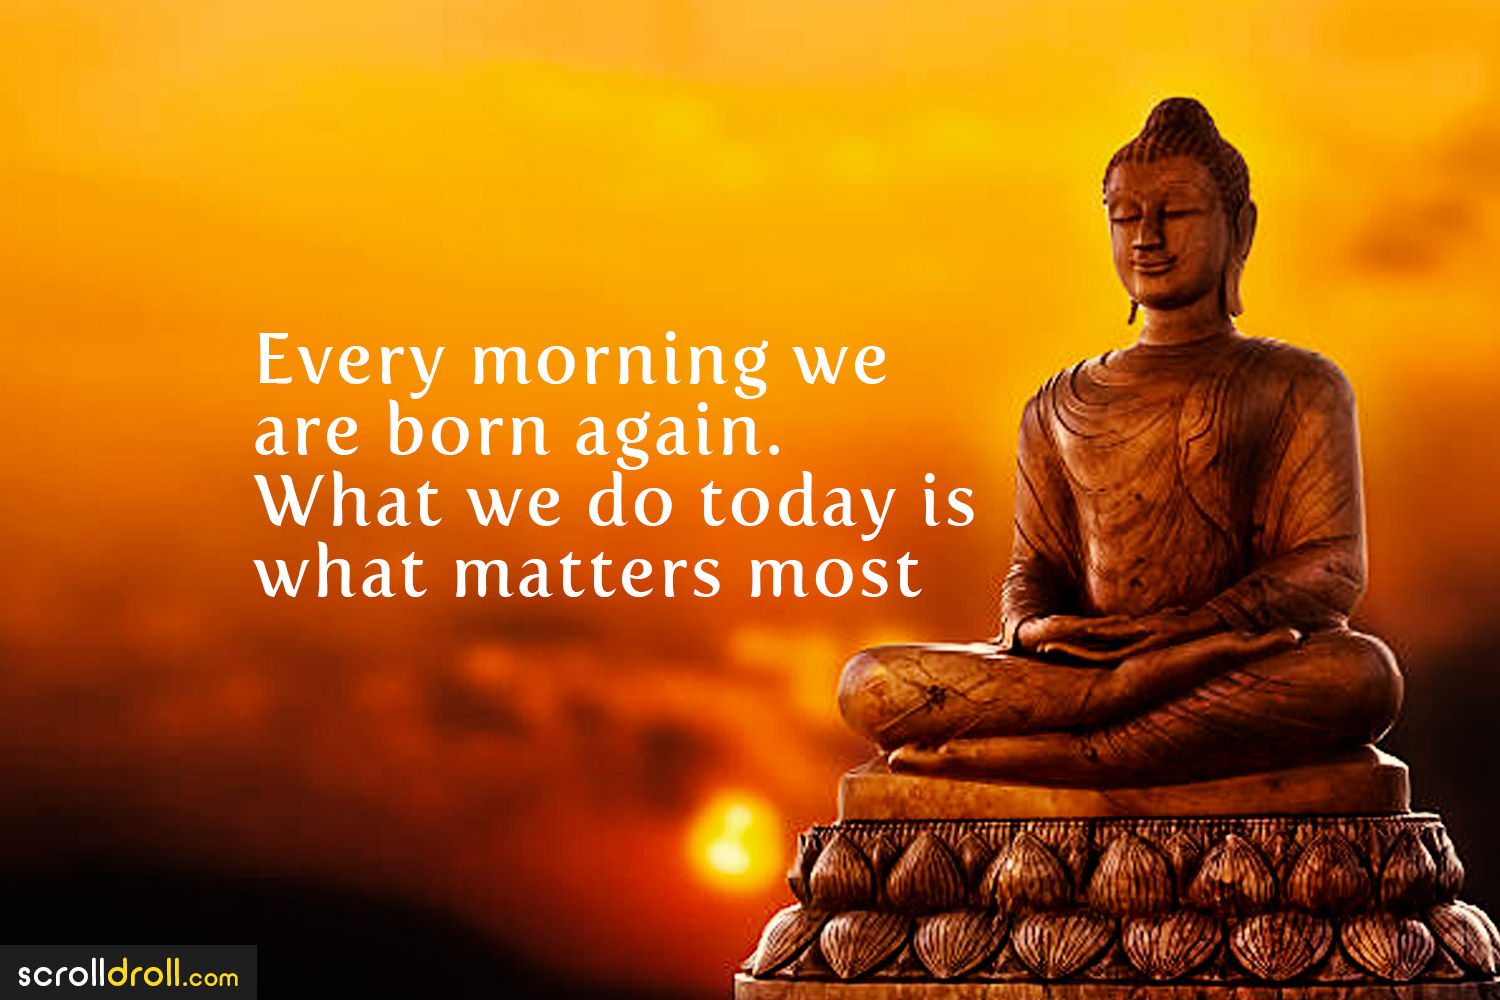 [IMAGE] EVERY MORNING WE ARE BORN AGAIN.